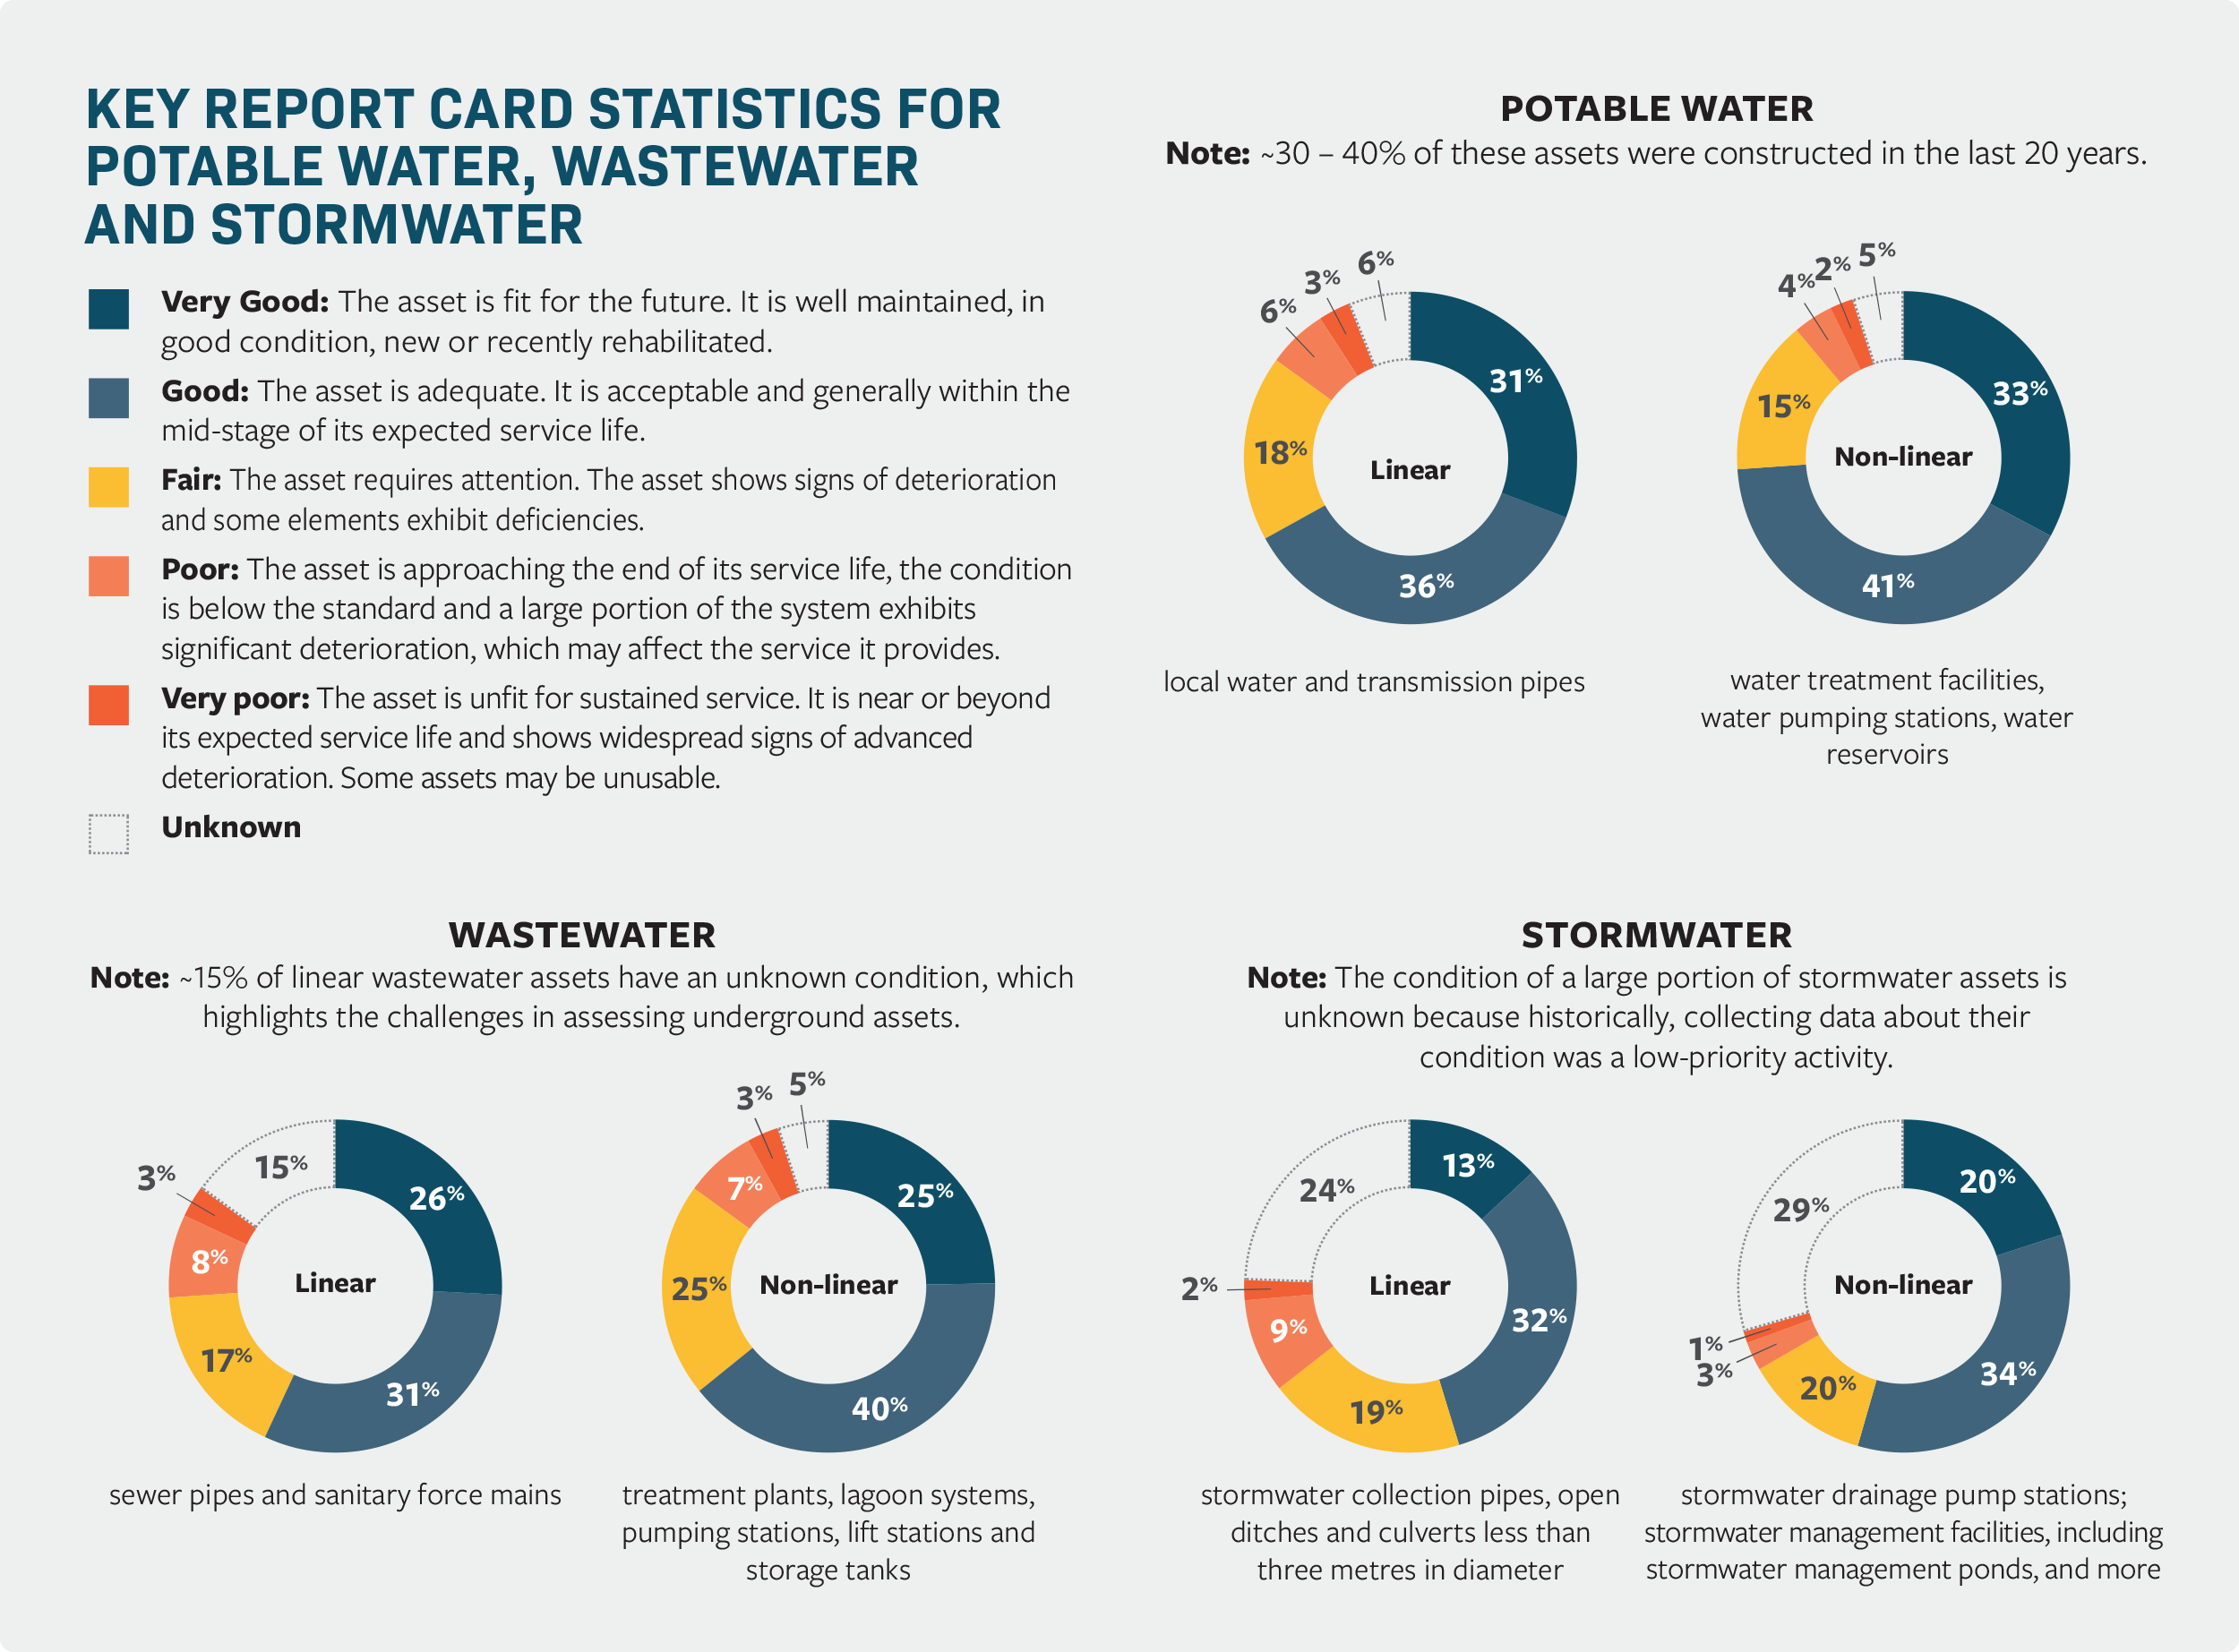 Key Report Card statistics for potable water, wastewater and stormwater